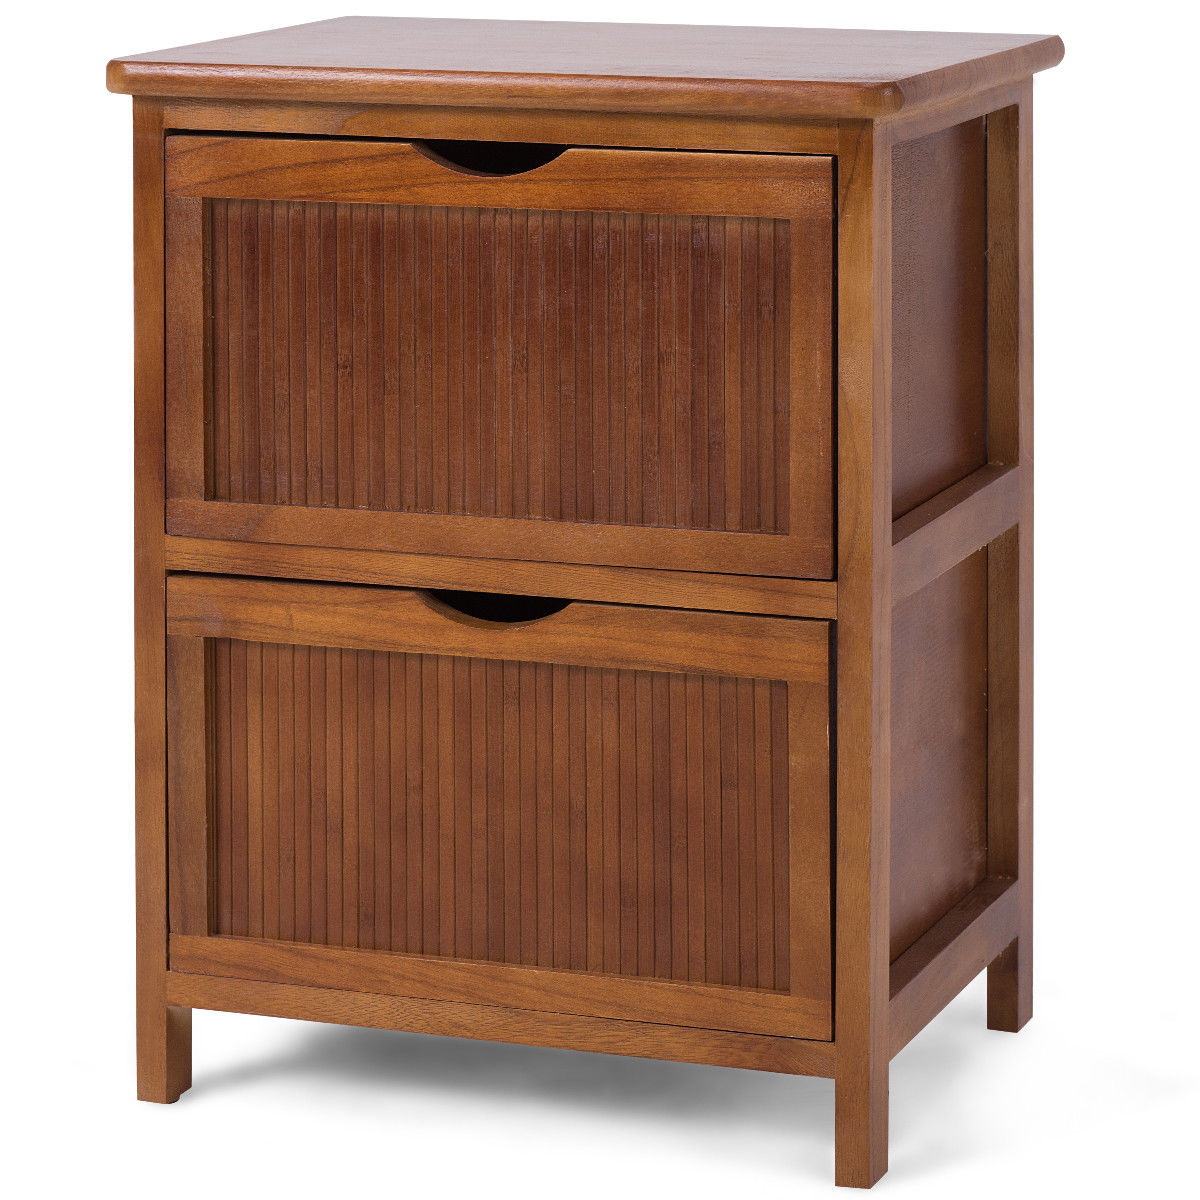 Giantex 2 Drawers Nightstand Contemporary Vintage Bedside Table Solid Wood End table Bedroom Furniture HW57057 end table